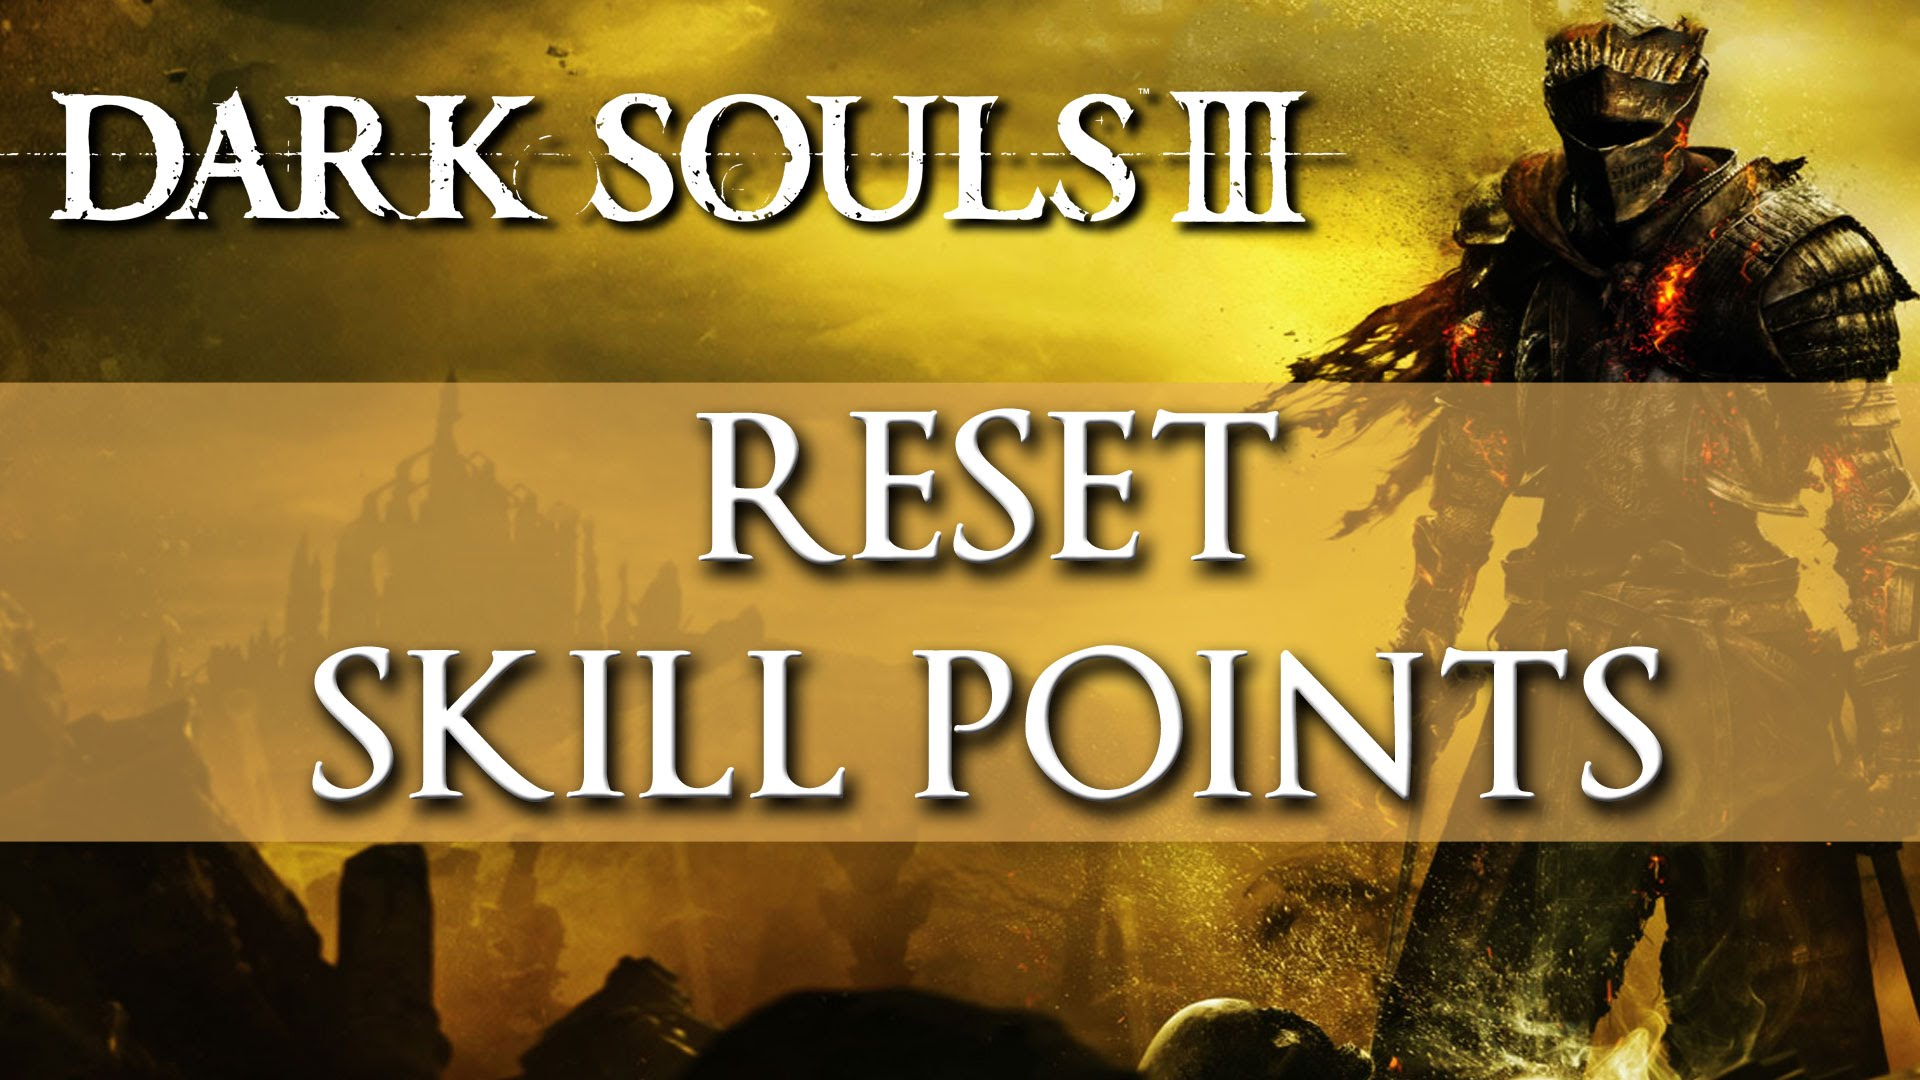 Dark Souls 3 - How to Reset Skill Points and Change Appearance